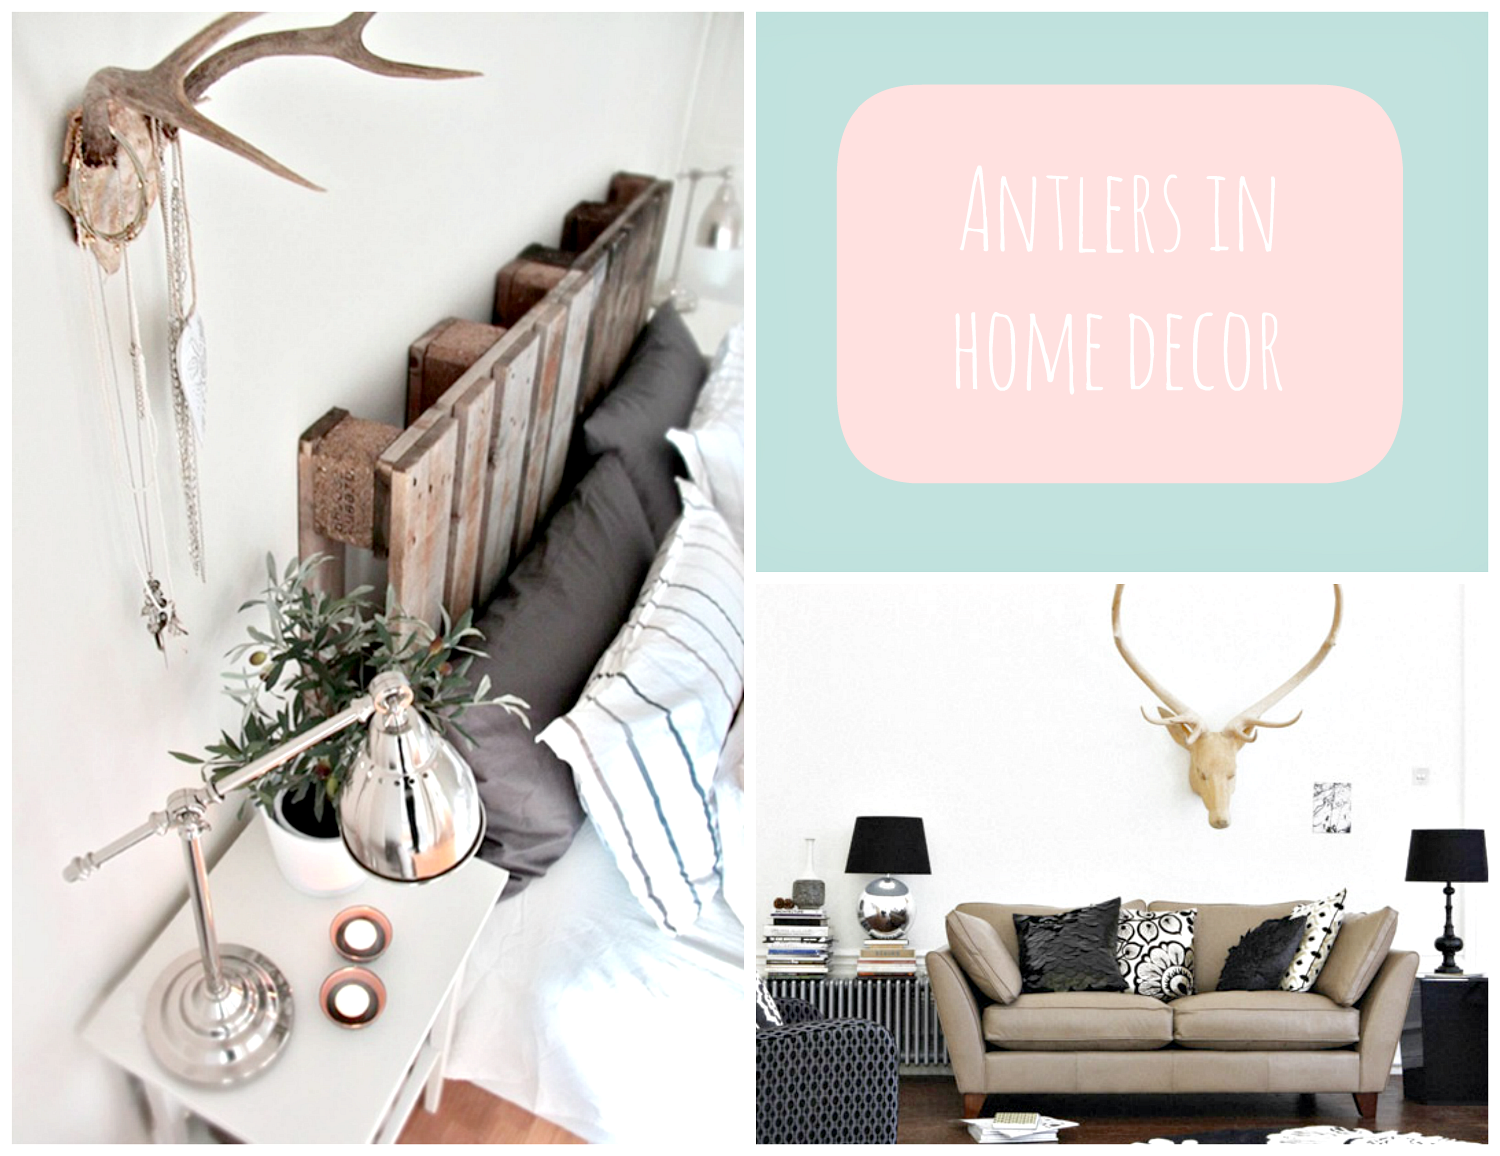 antlers in home decor